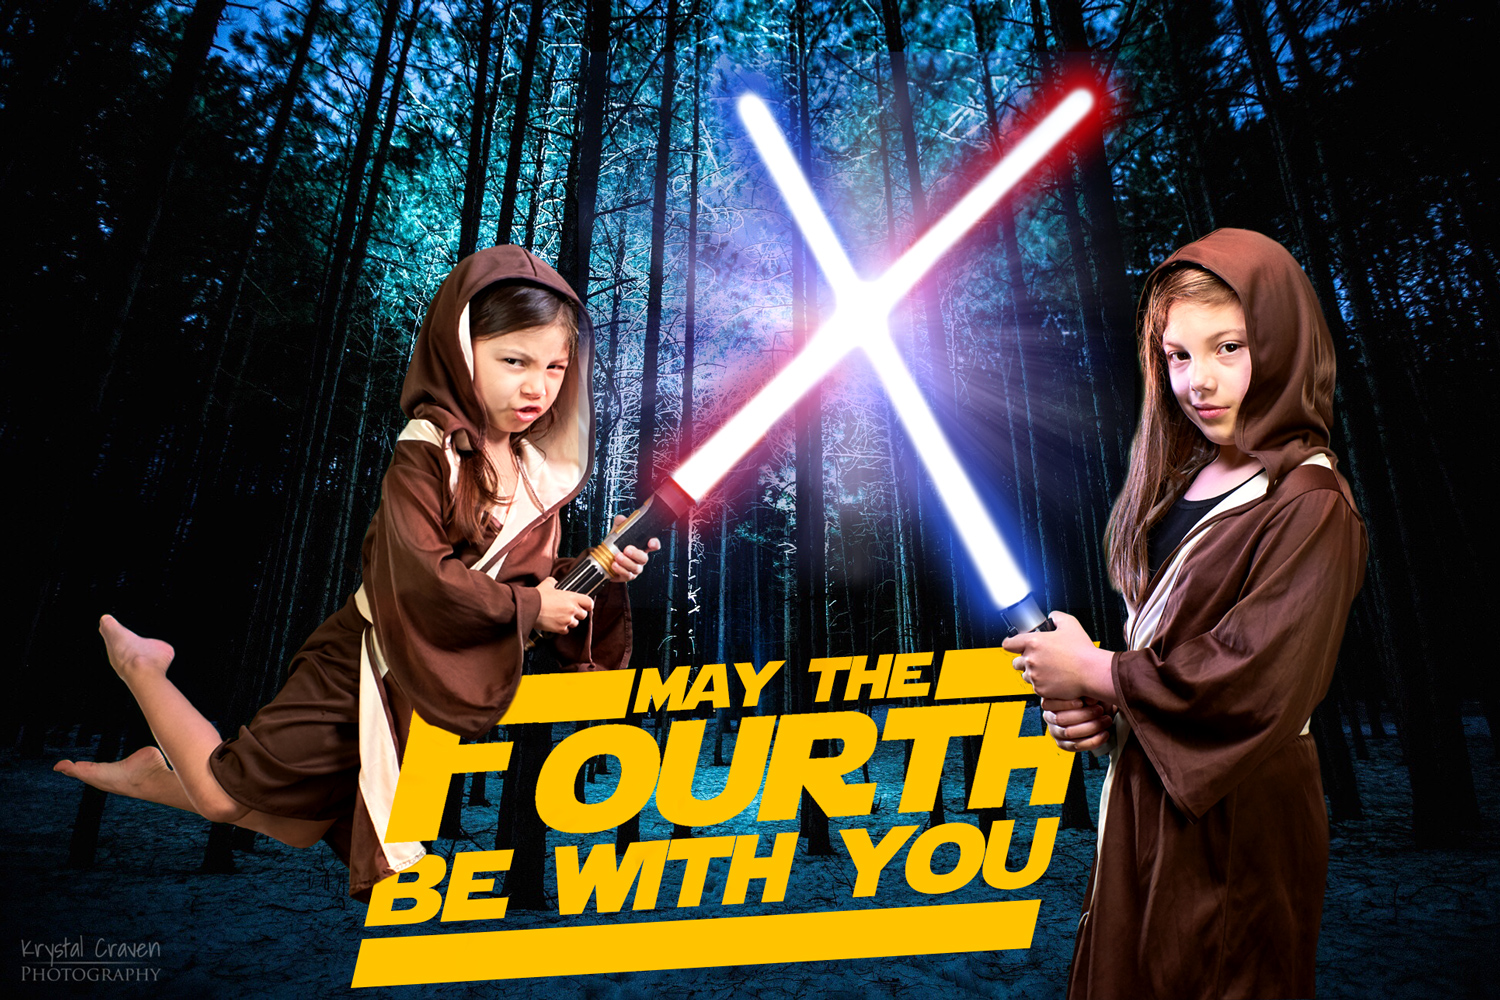 2018_May-The-Fourth-Be-With-You_Lightsaber-fight.jpg